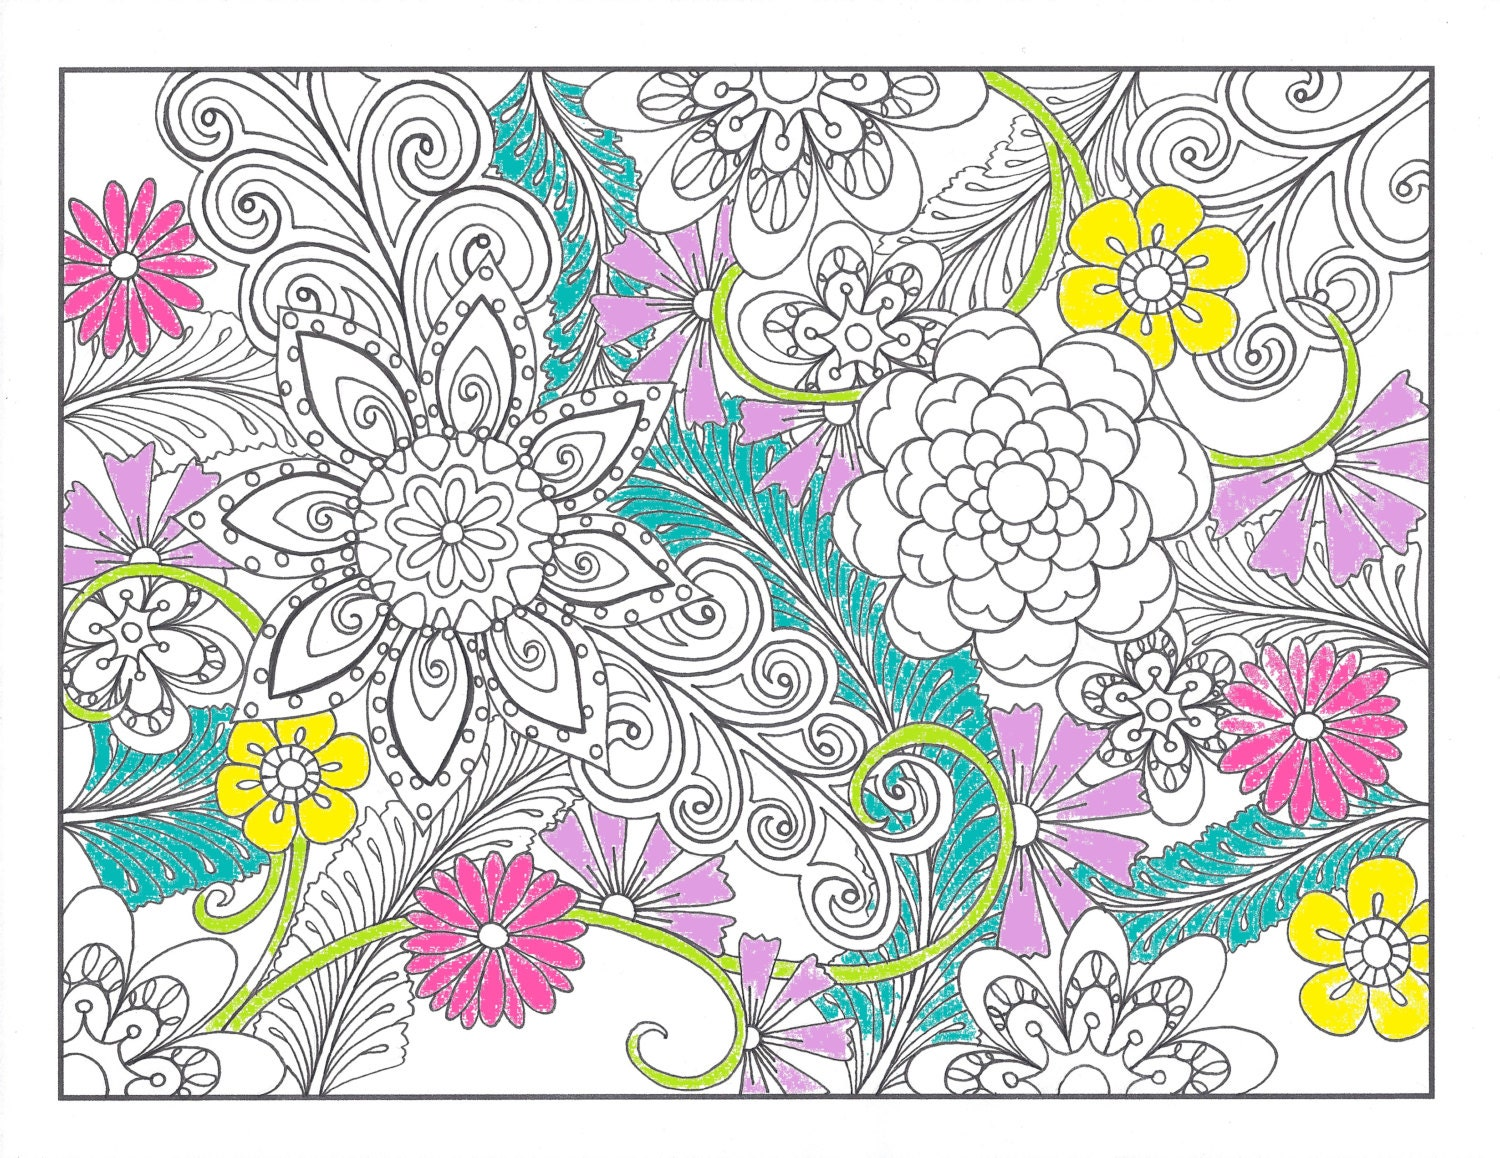 Printable Coloring Page Zentangle Inspired Flower